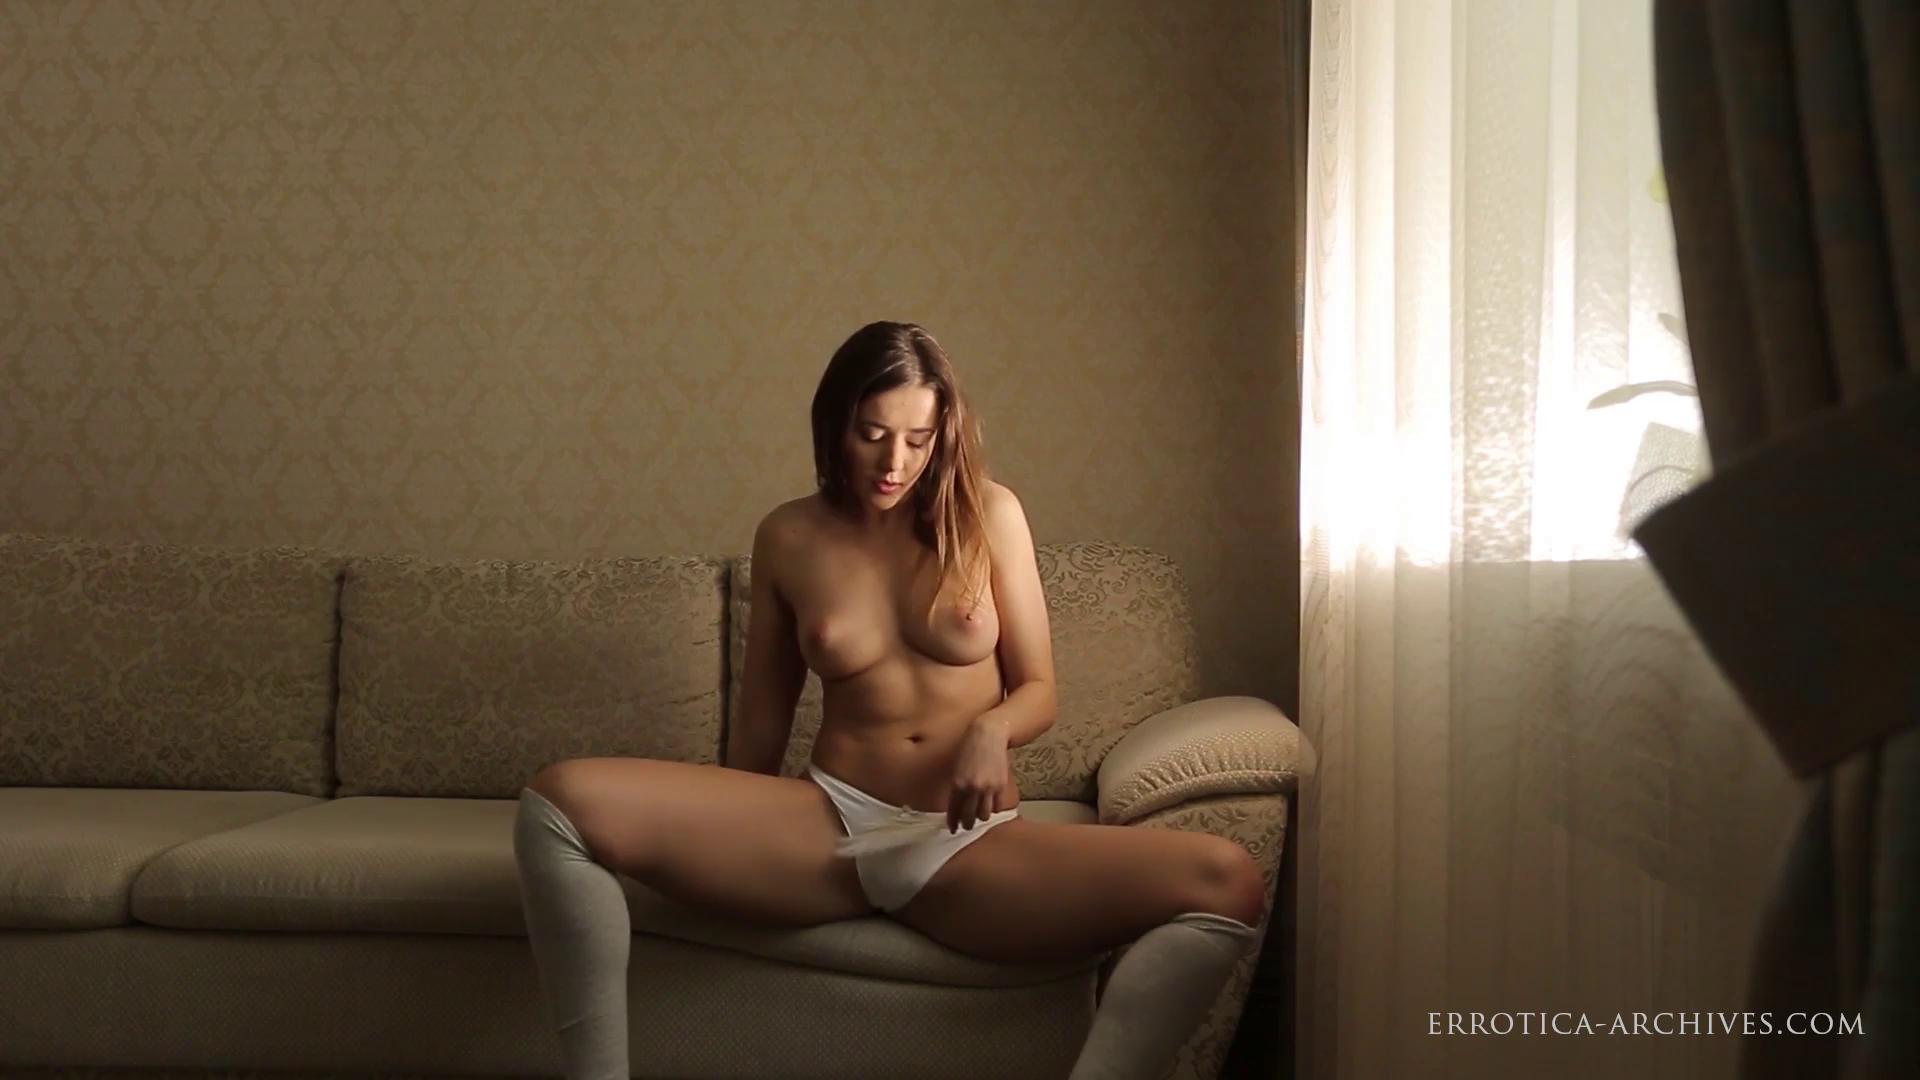 Errotica-Archives – Sybil A Soft Touch